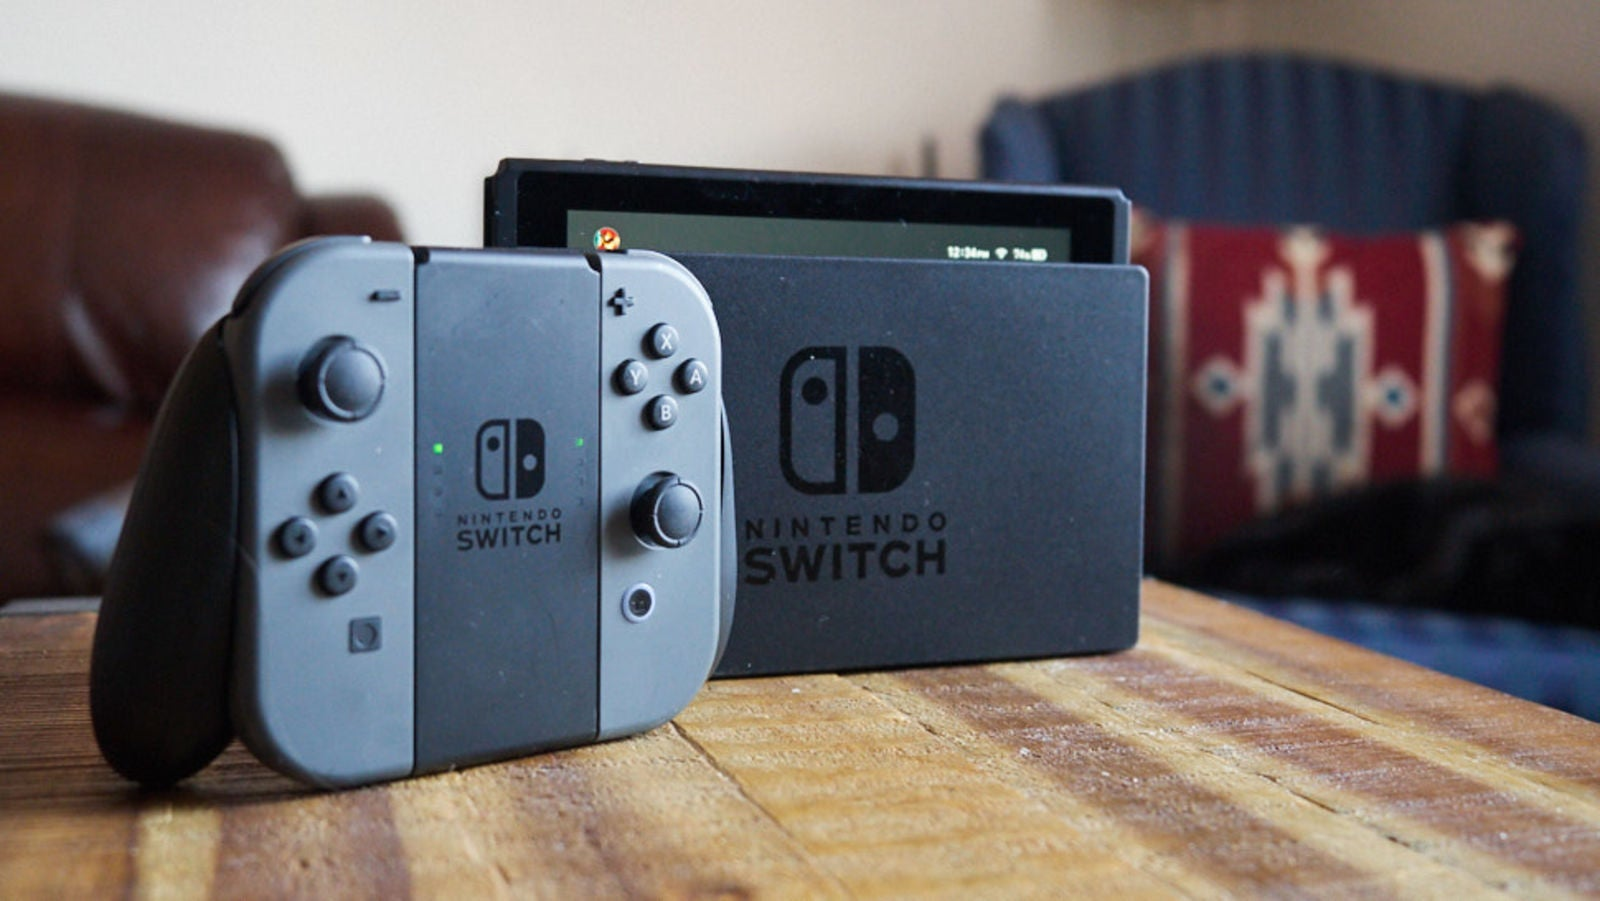 Nintendo reportedly delays 64GB Switch game cards until 2019